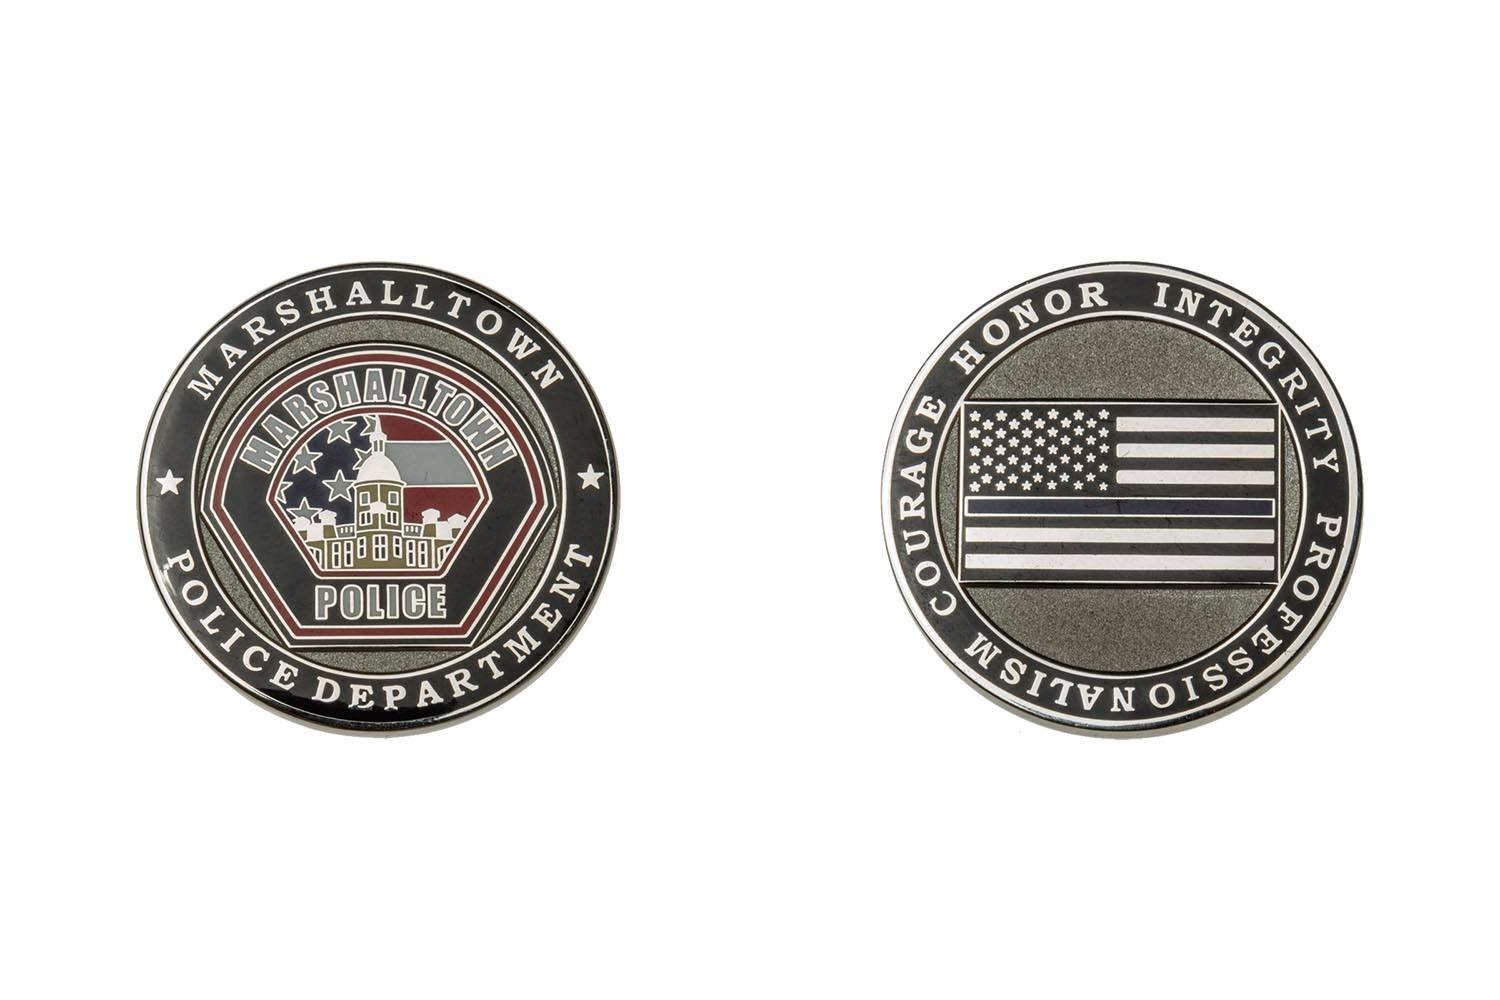 Metal police coins